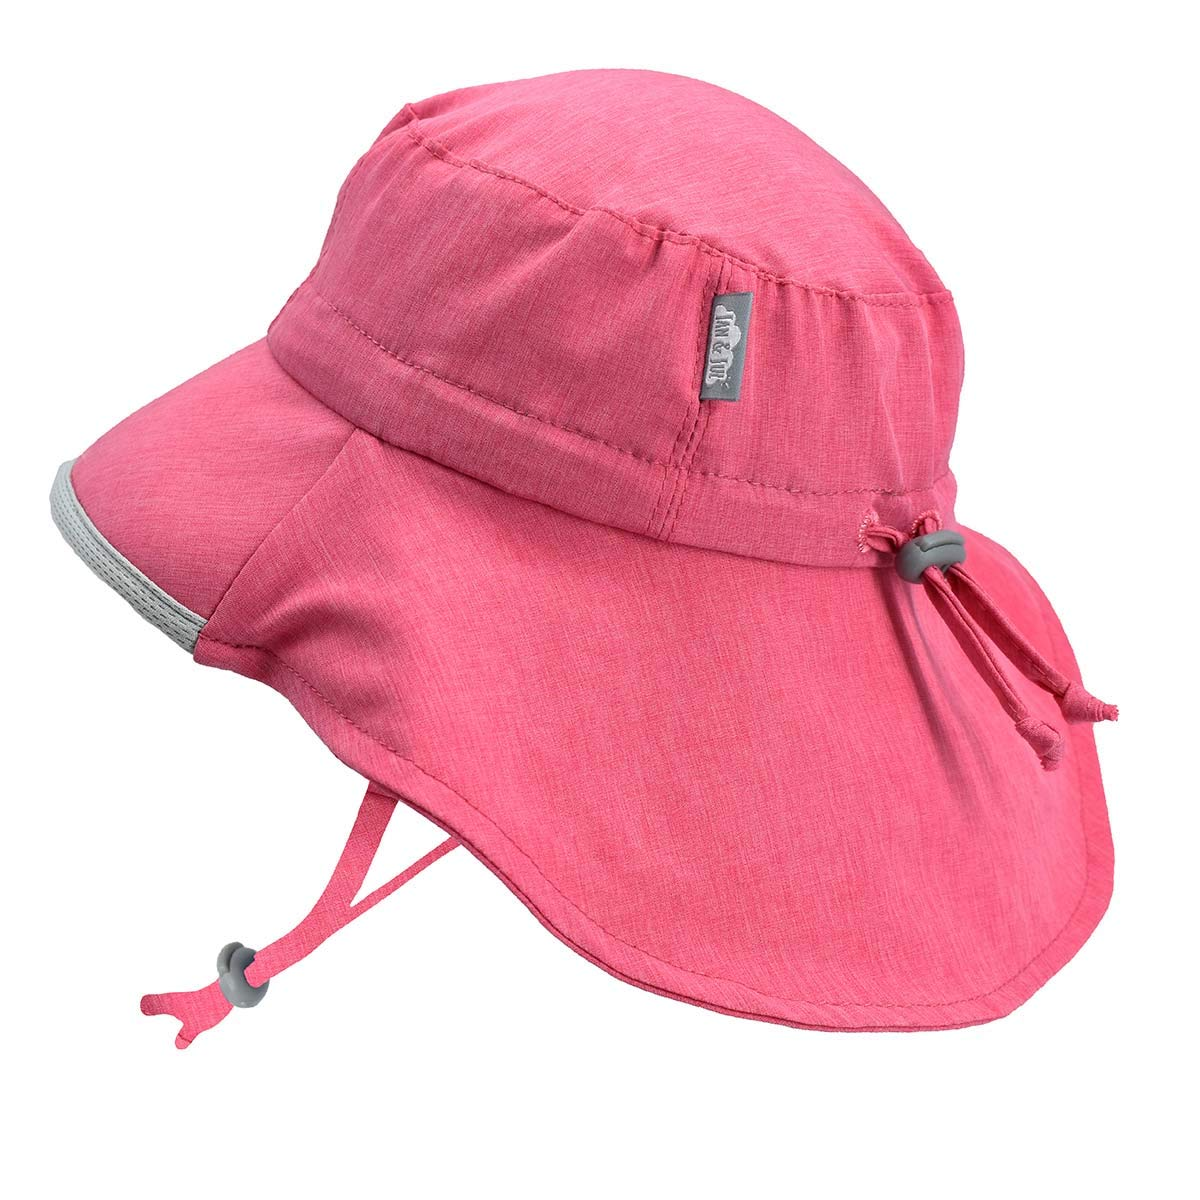 Girls Quick-Dry Pool Swim Sun-Hats 50+ UPF Adjustable (L: 2Y - 5Y, Pink) by JAN & JUL